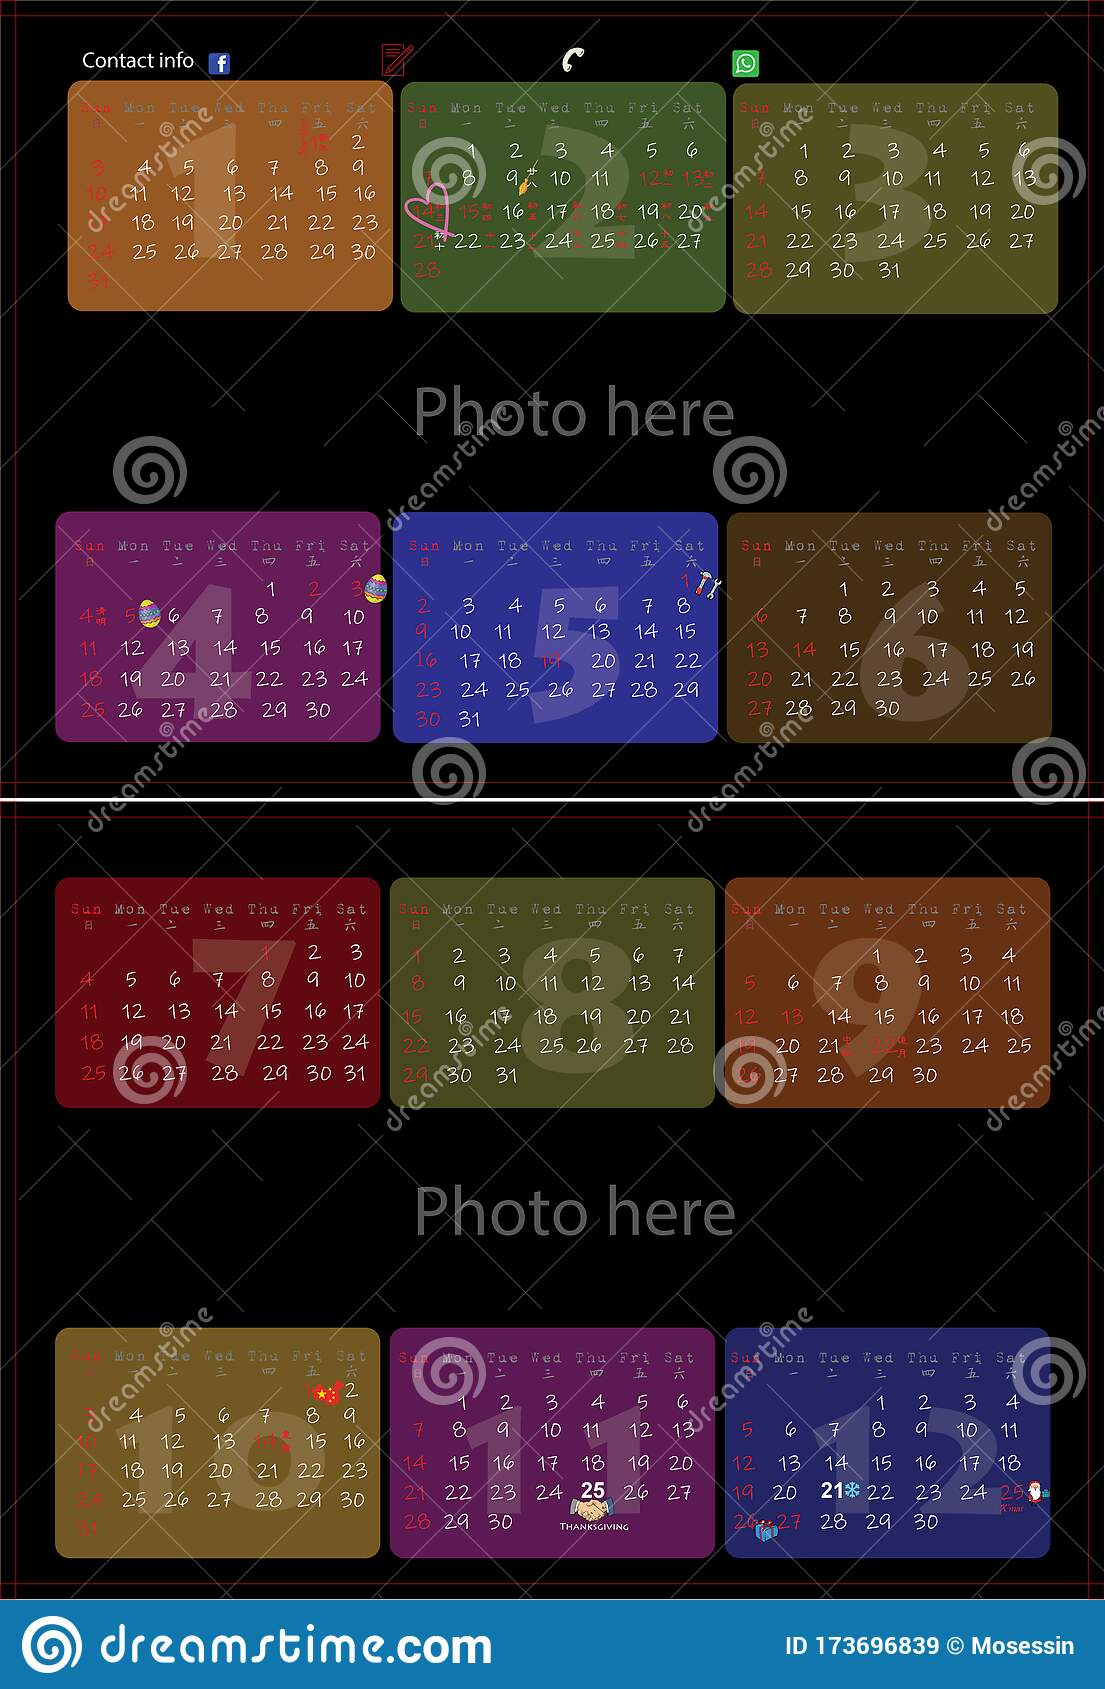 2021 Hk Calendar Template Vector Stock Vector - Illustration